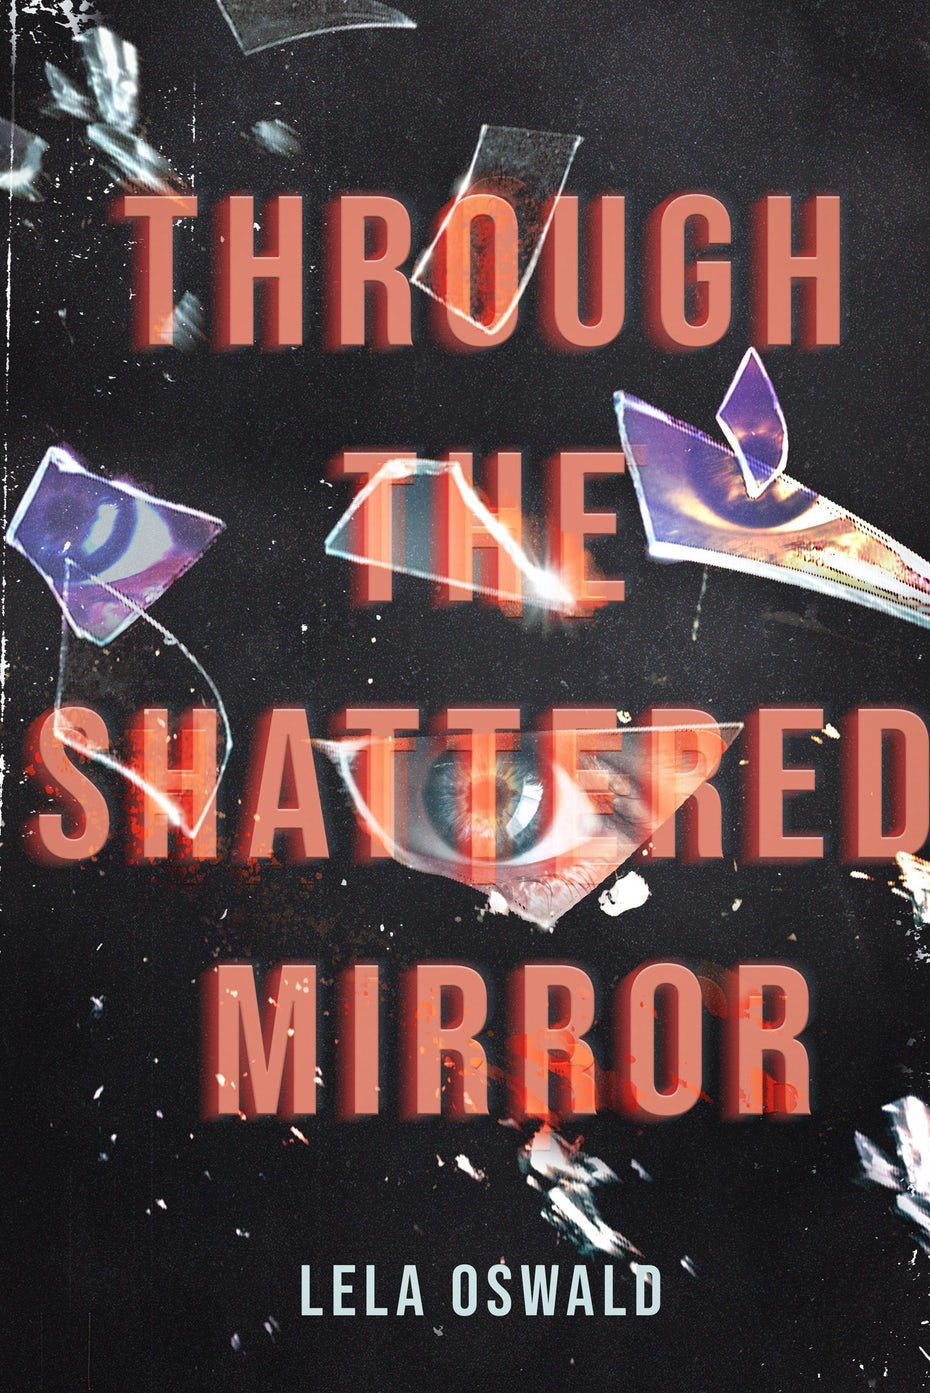 gray book cover with red text and images of eyes and shattered glass